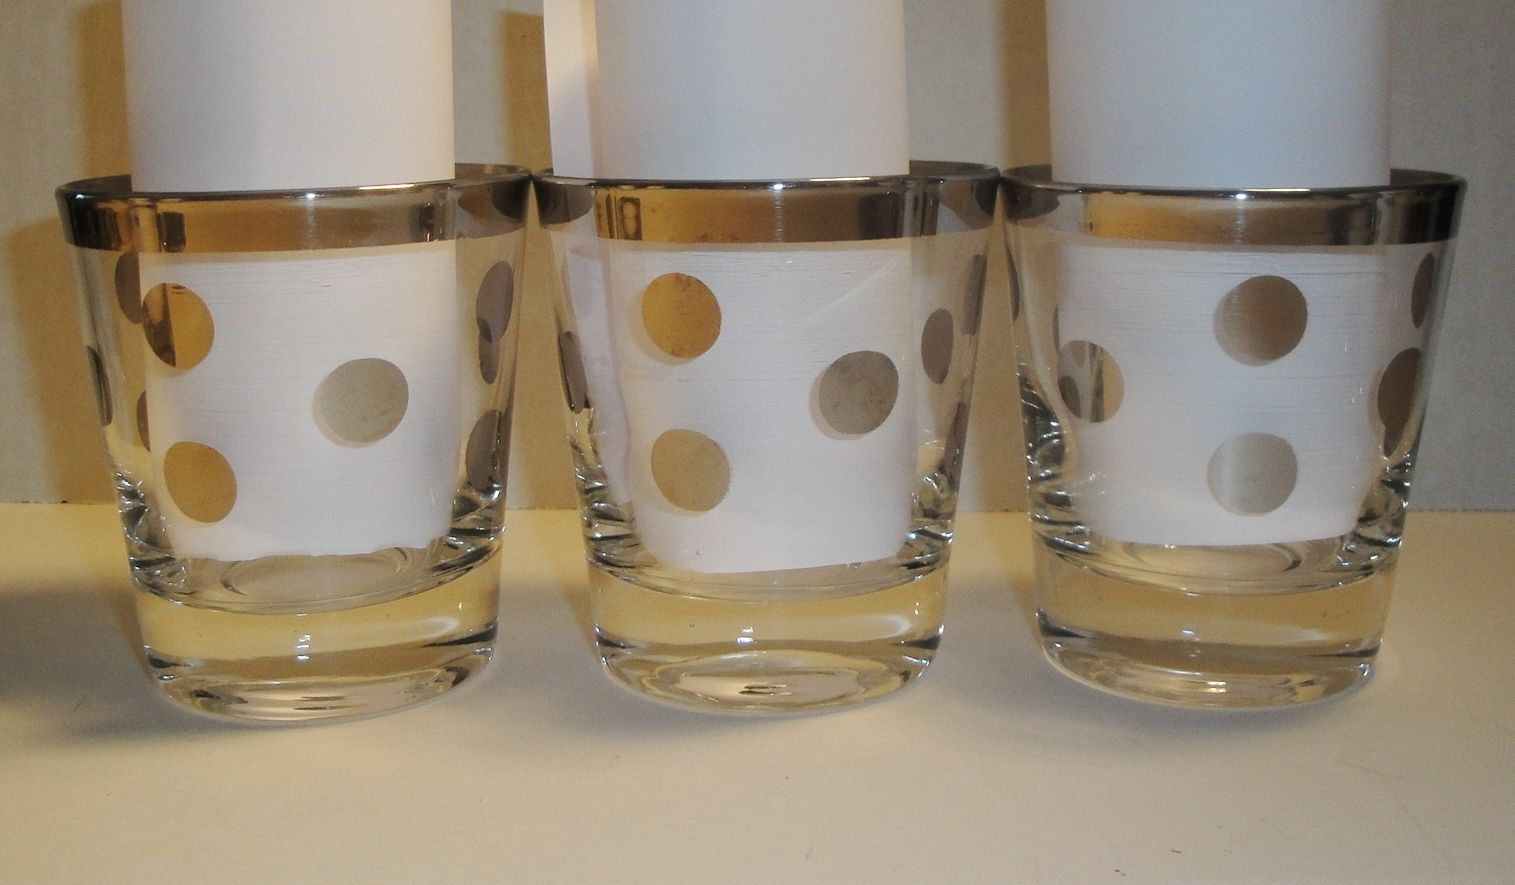 Set of 8 Retro/Mid-Century Modern Silver-Rimmed Cocktail Glasses with Polka Dots | eBay